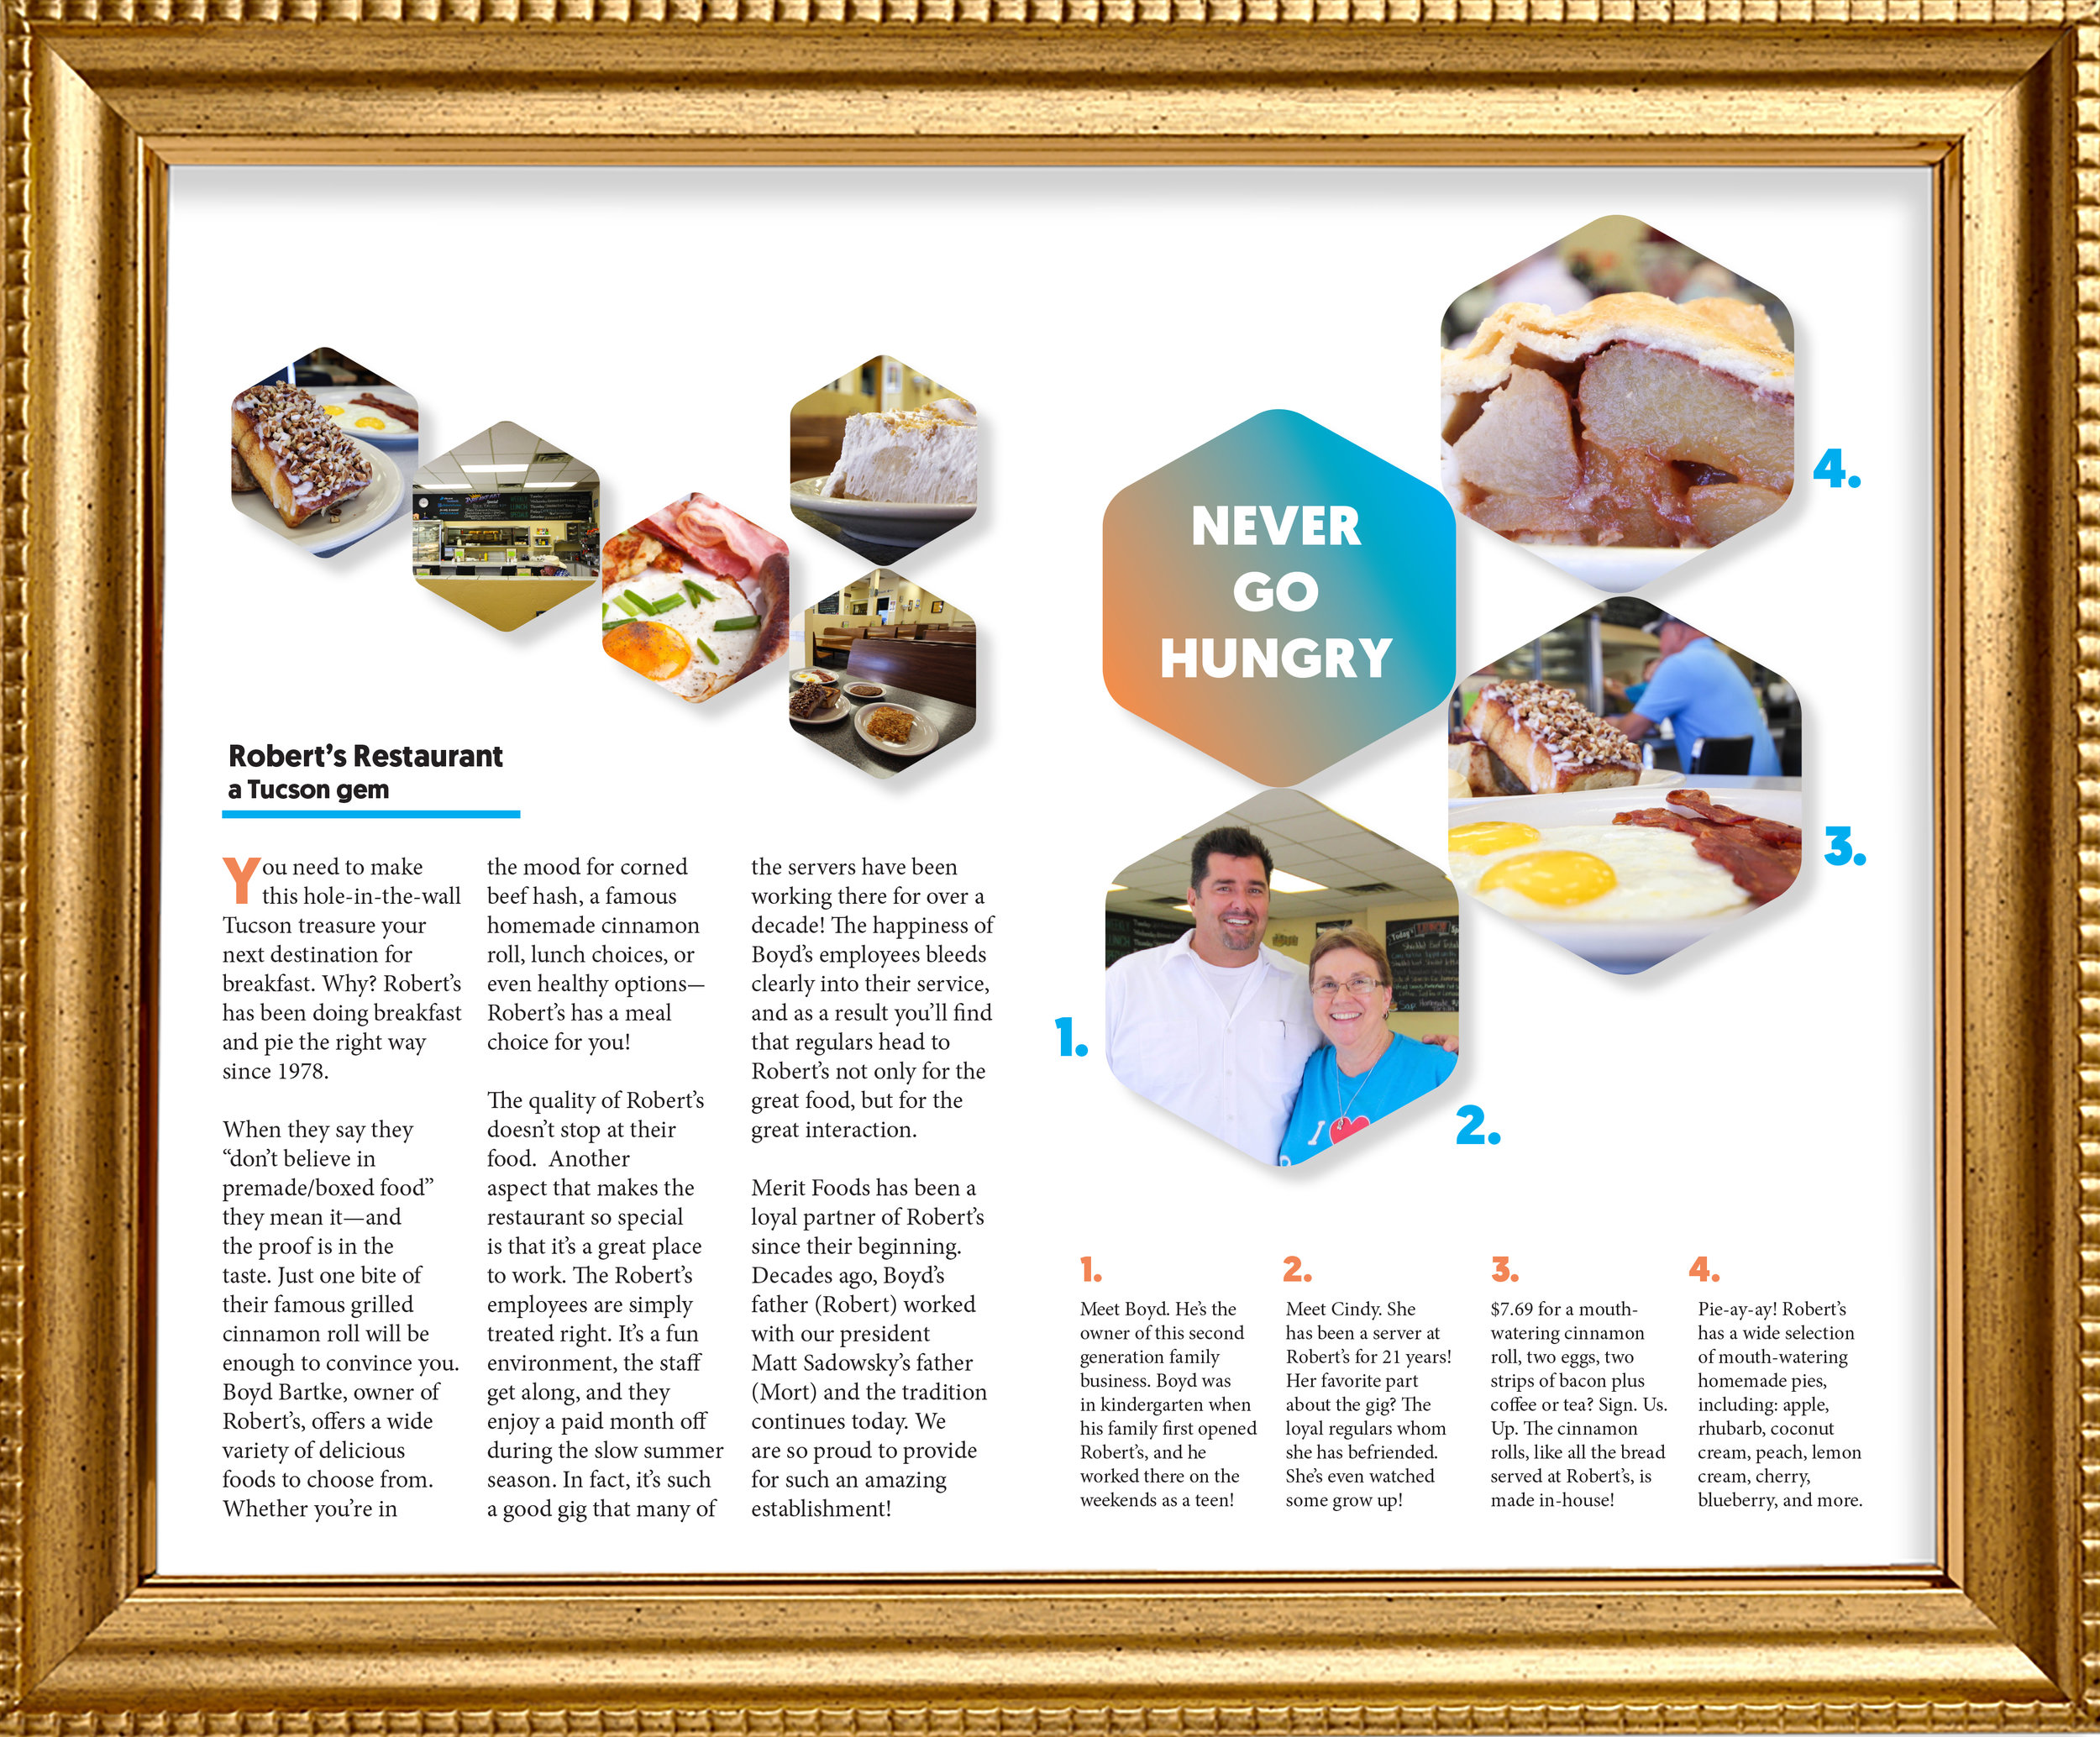 RESTAURANT EDITORIAL FEATURE   Here is an digital editorial about a local Tucson restaurant. (photography, photoshop, indesign, copywriting)      Please click here for more details, and to see other digital editorial designs!